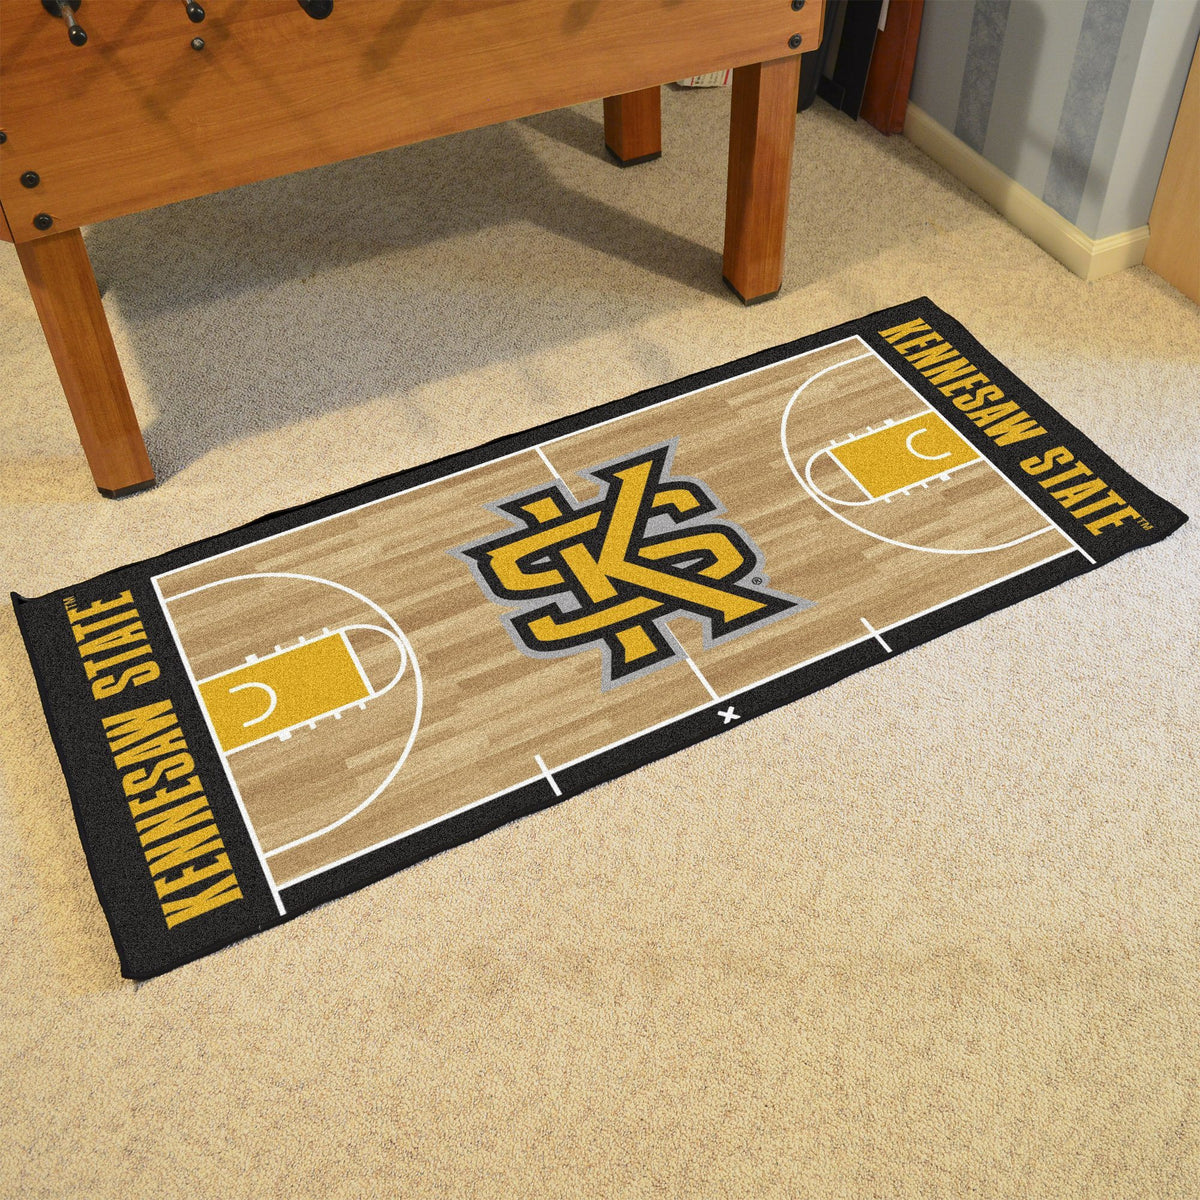 Collegiate - NCAA Basketball Runner Collegiate Mats, Rectangular Mats, NCAA Basketball Runner, Collegiate, Home Fan Mats Kennesaw State